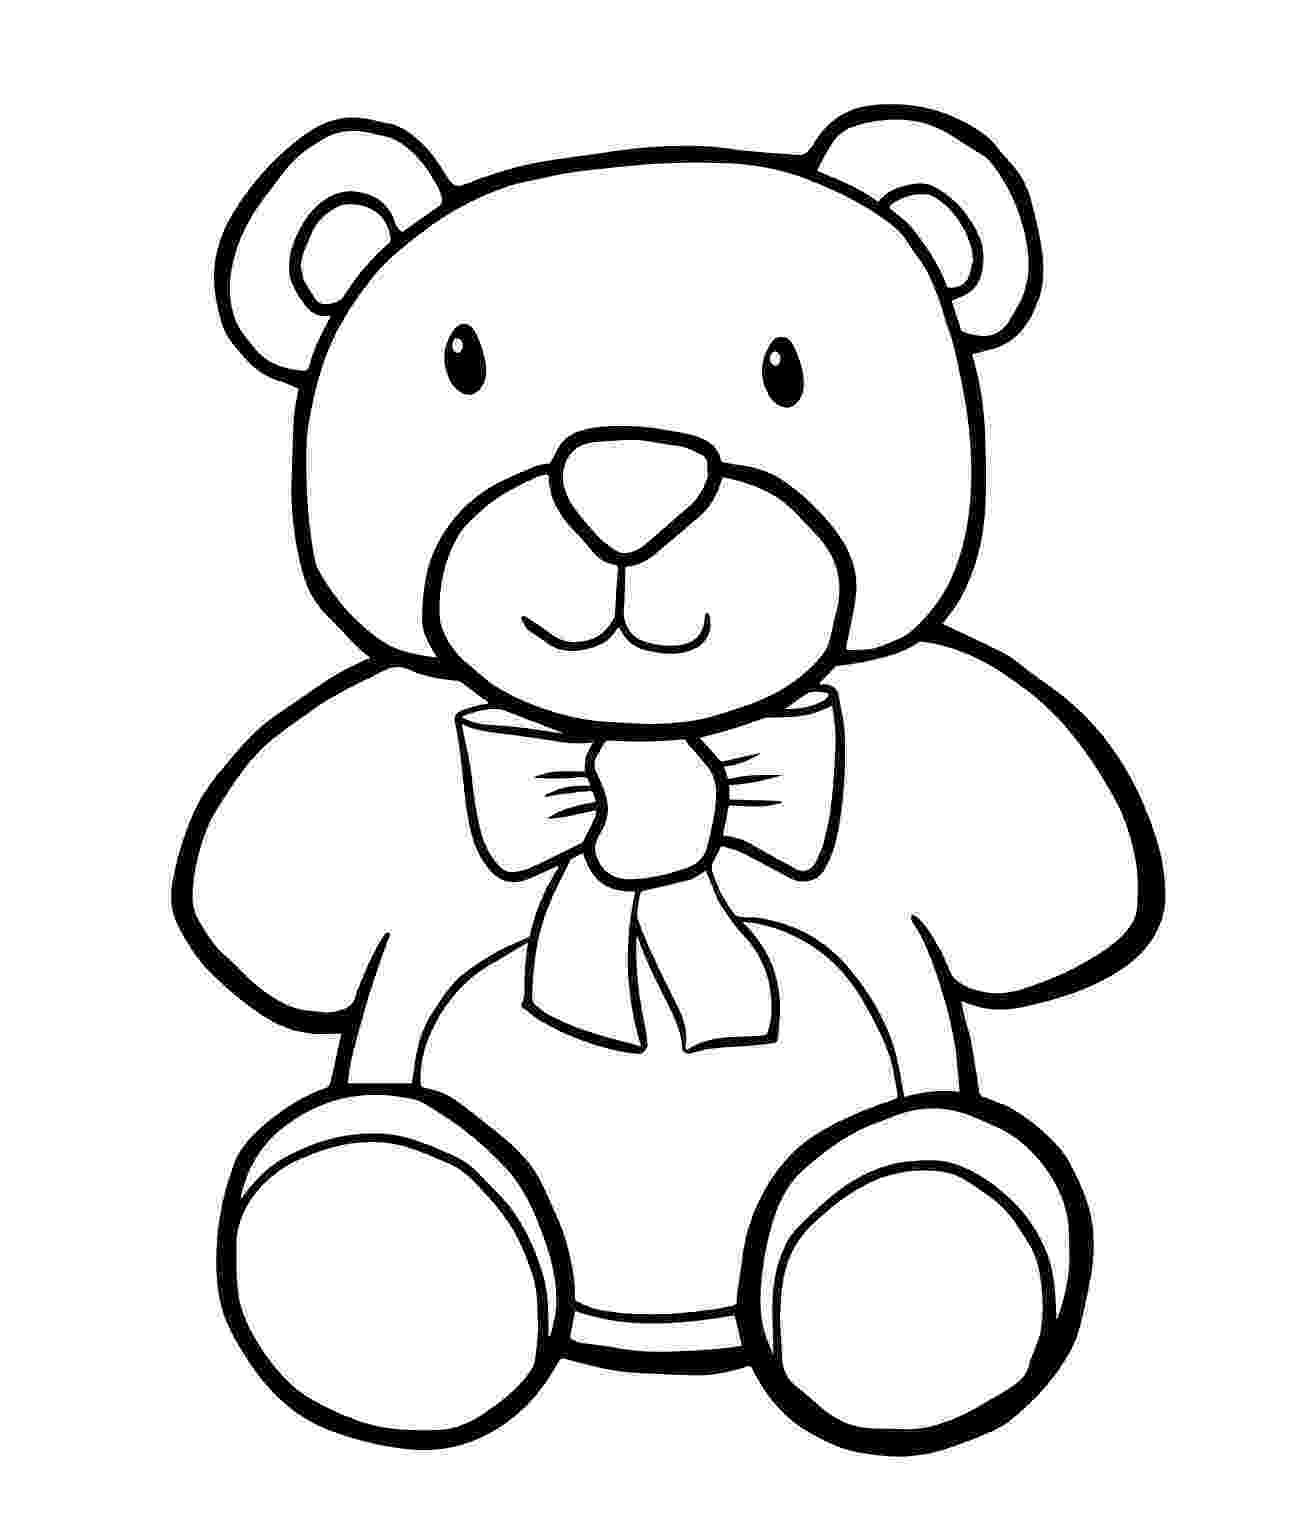 bear pictures to color free printable teddy bear coloring pages for kids to bear color pictures